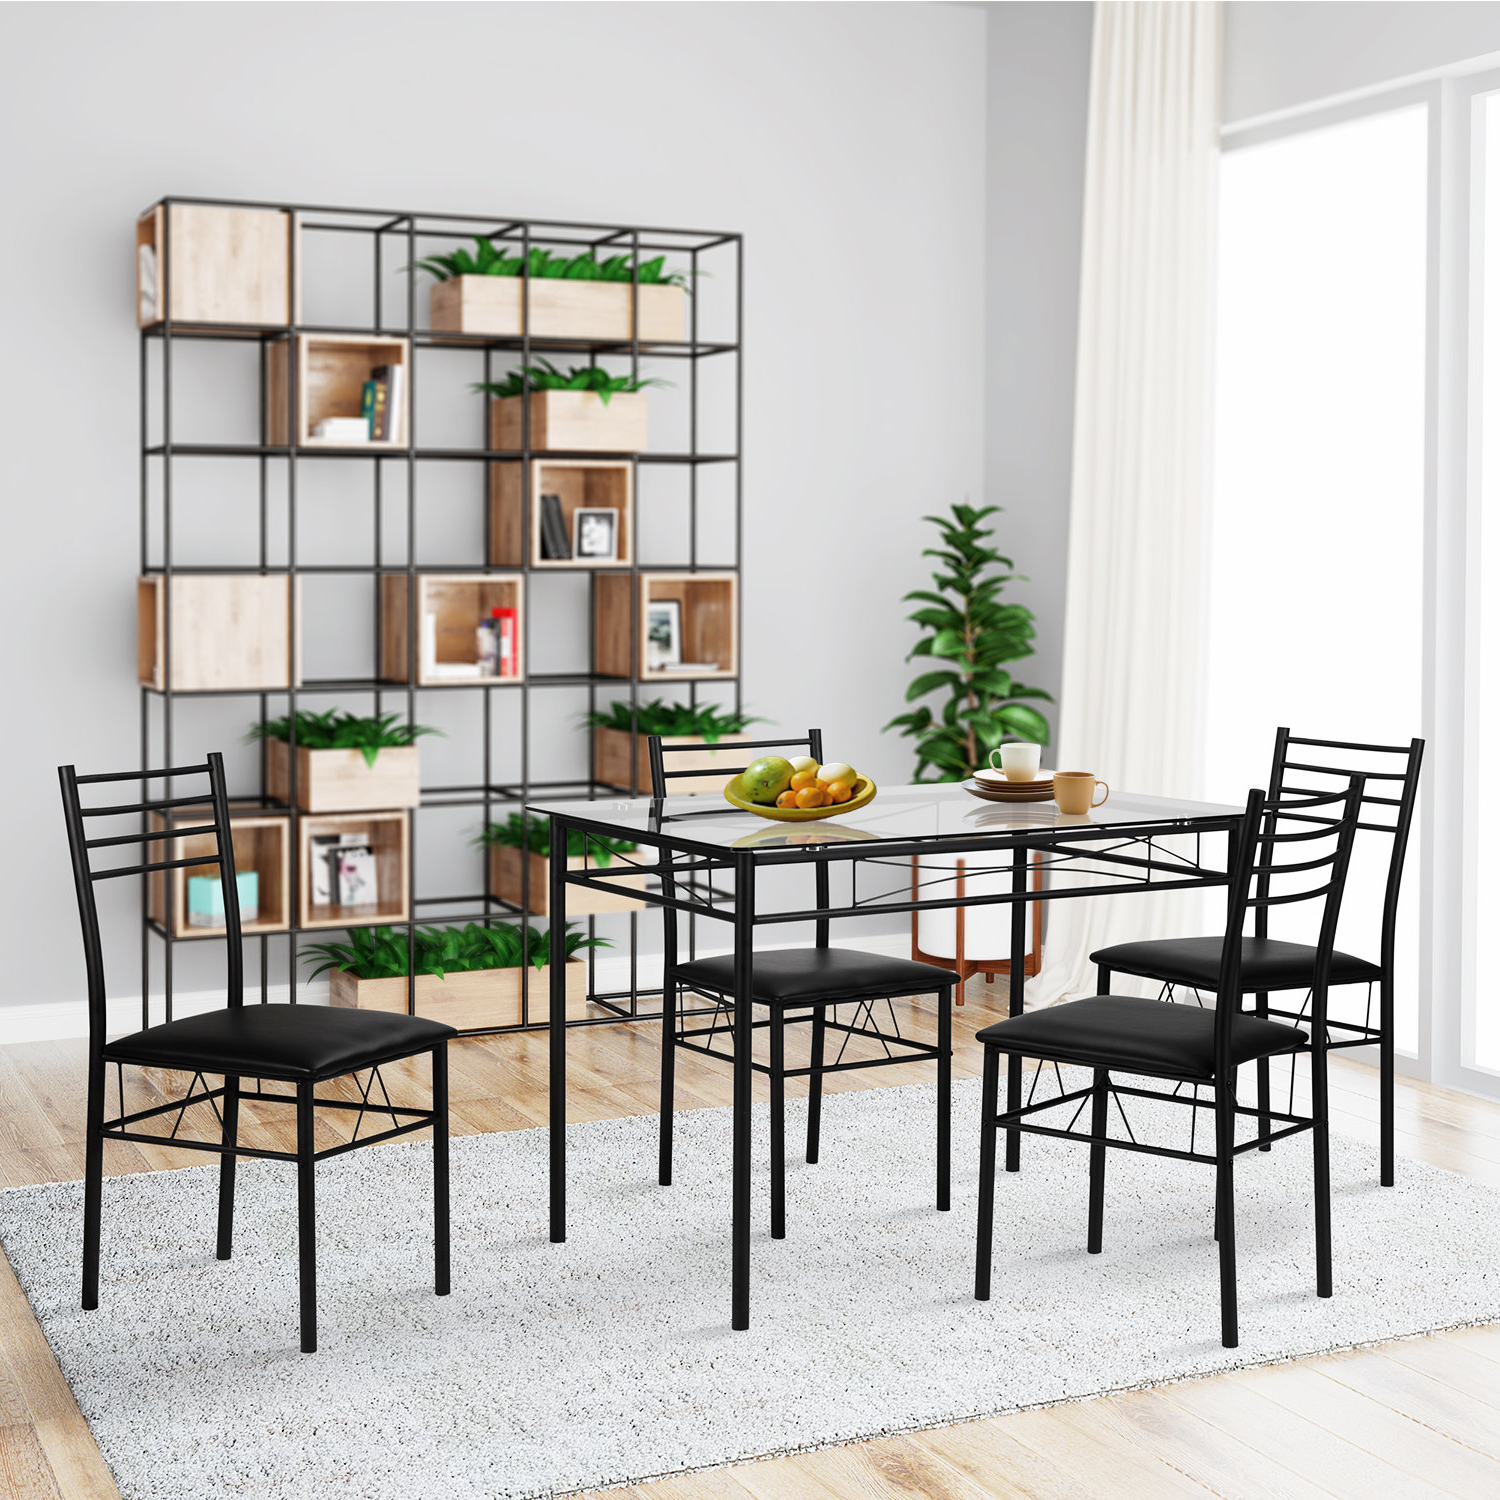 Latest Liles 5 Piece Breakfast Nook Dining Sets Pertaining To Ebern Designs Lightle 5 Piece Breakfast Nook Dining Set (View 13 of 25)